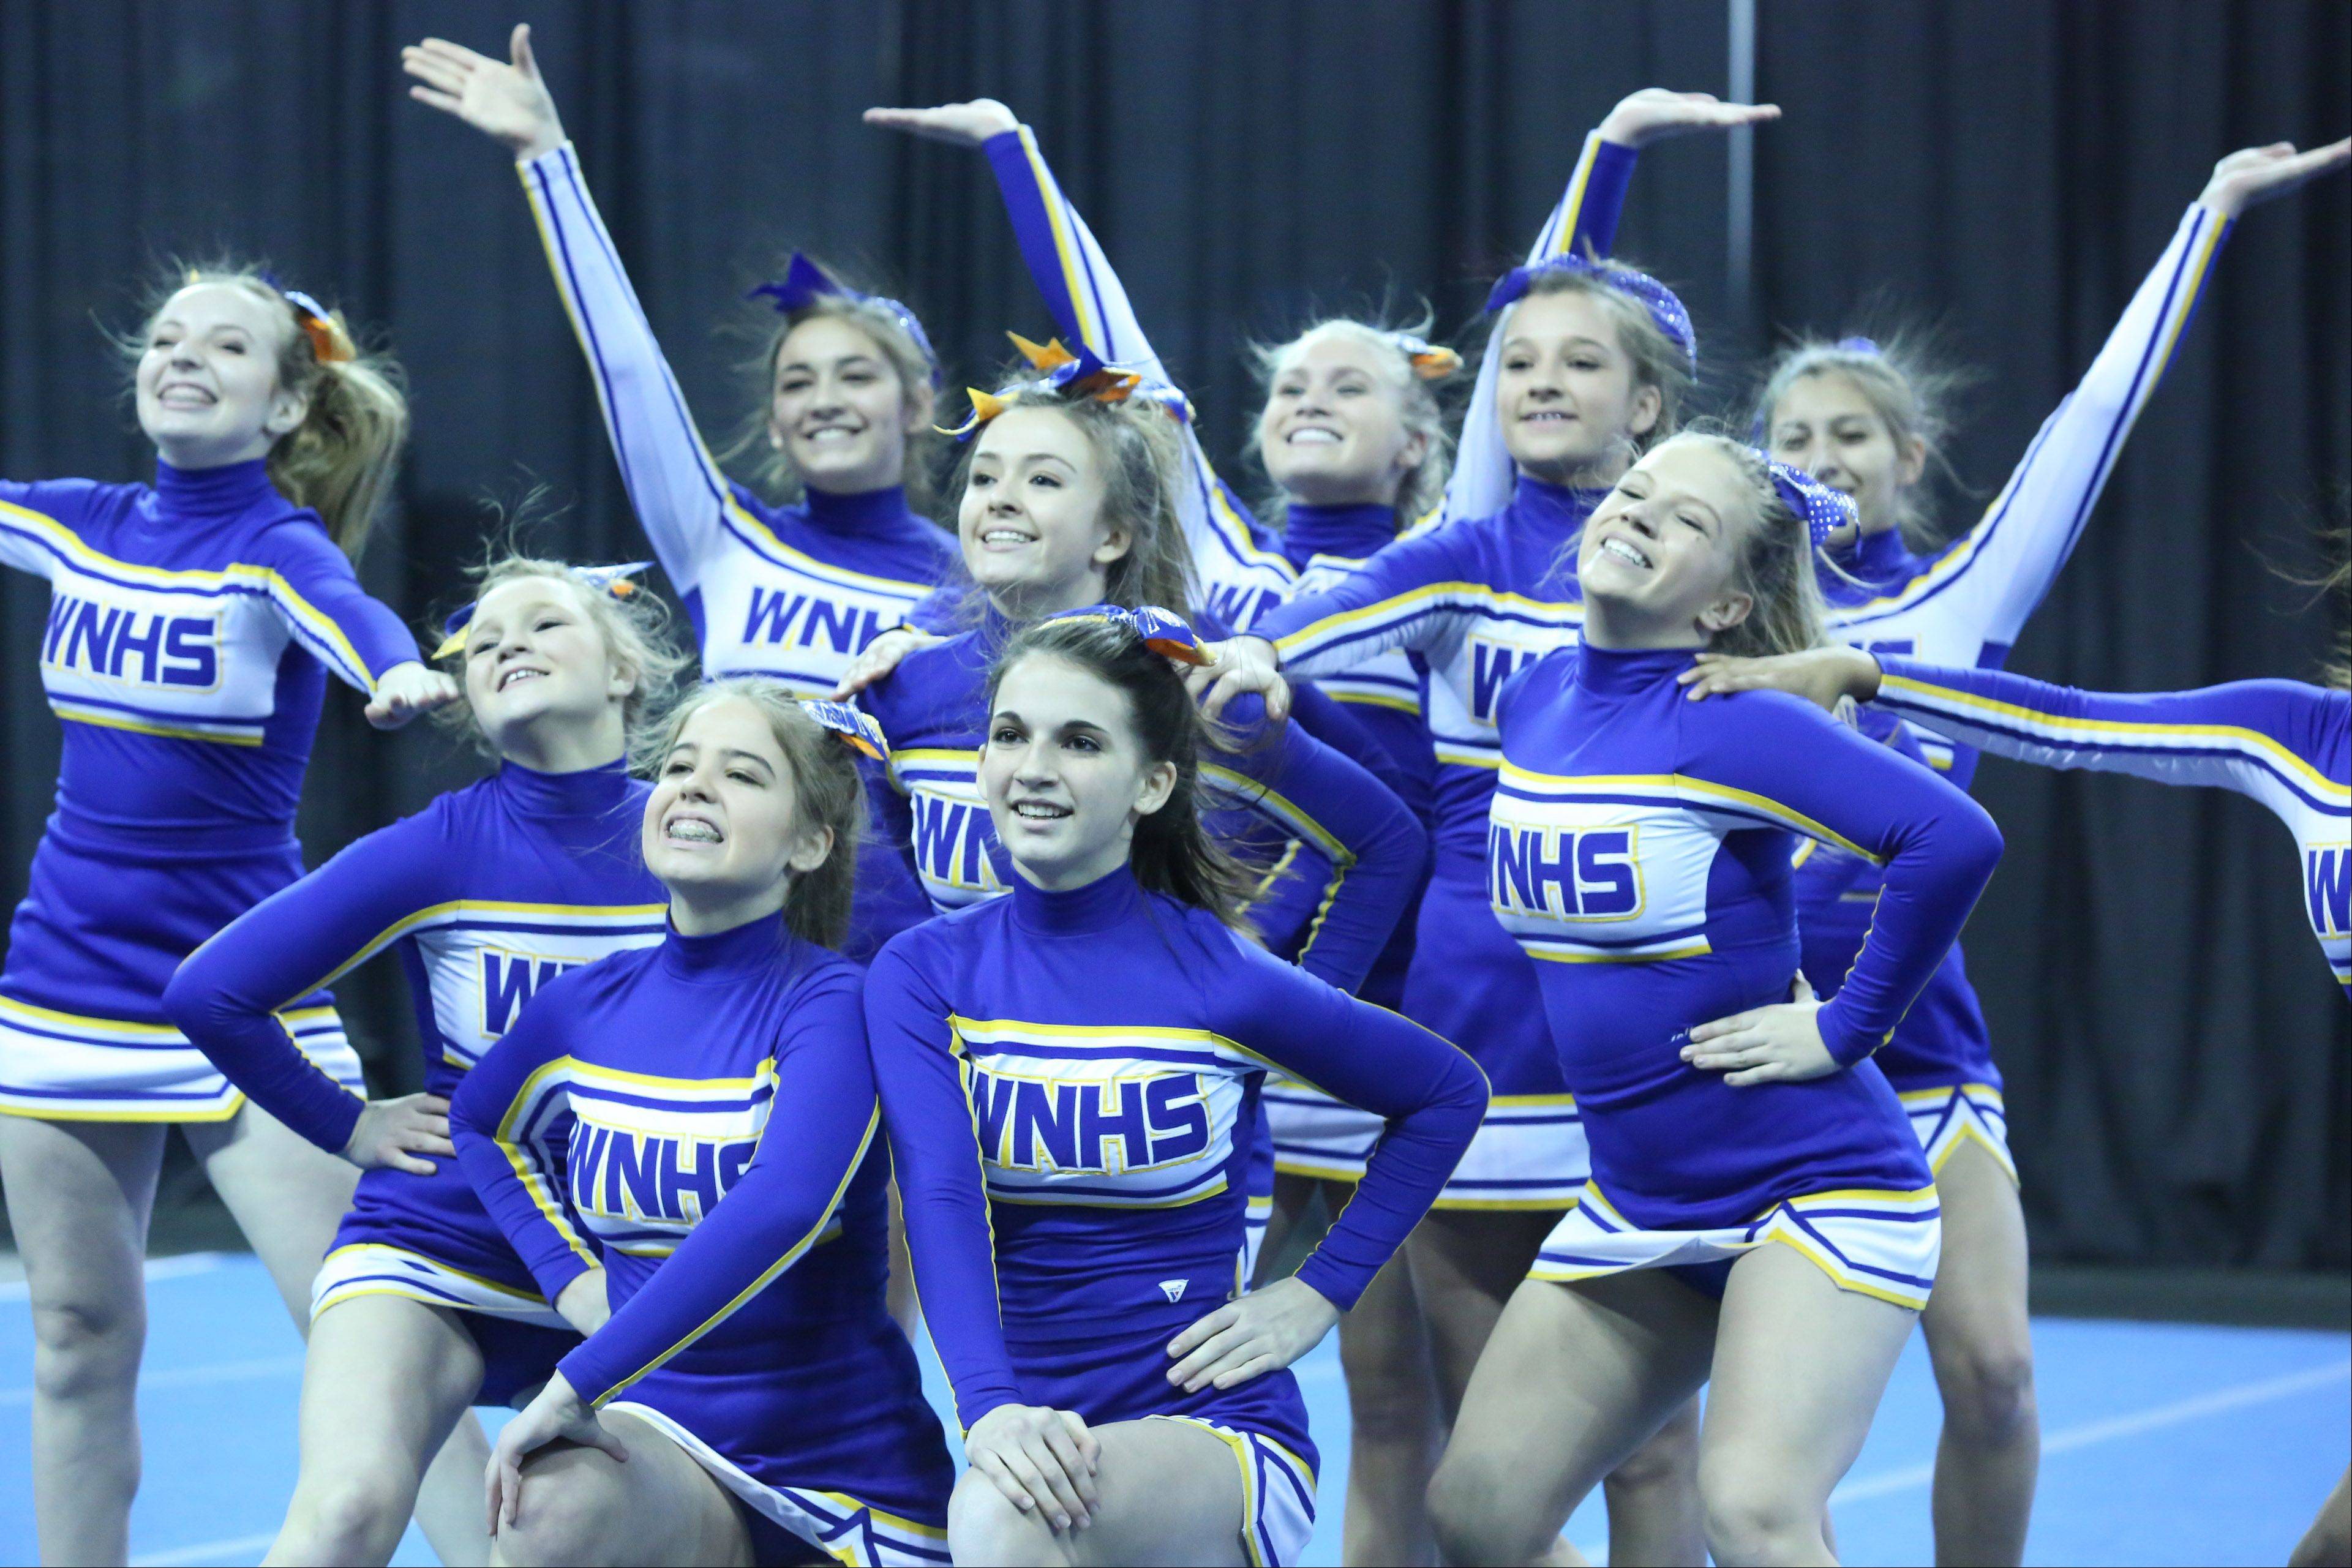 Wheaton North High School cheer team competes in the IHSA Winter Meltdown Cheerleading and Dance Competition at Sears Centre Arena on Saturday in Hoffman Estates.